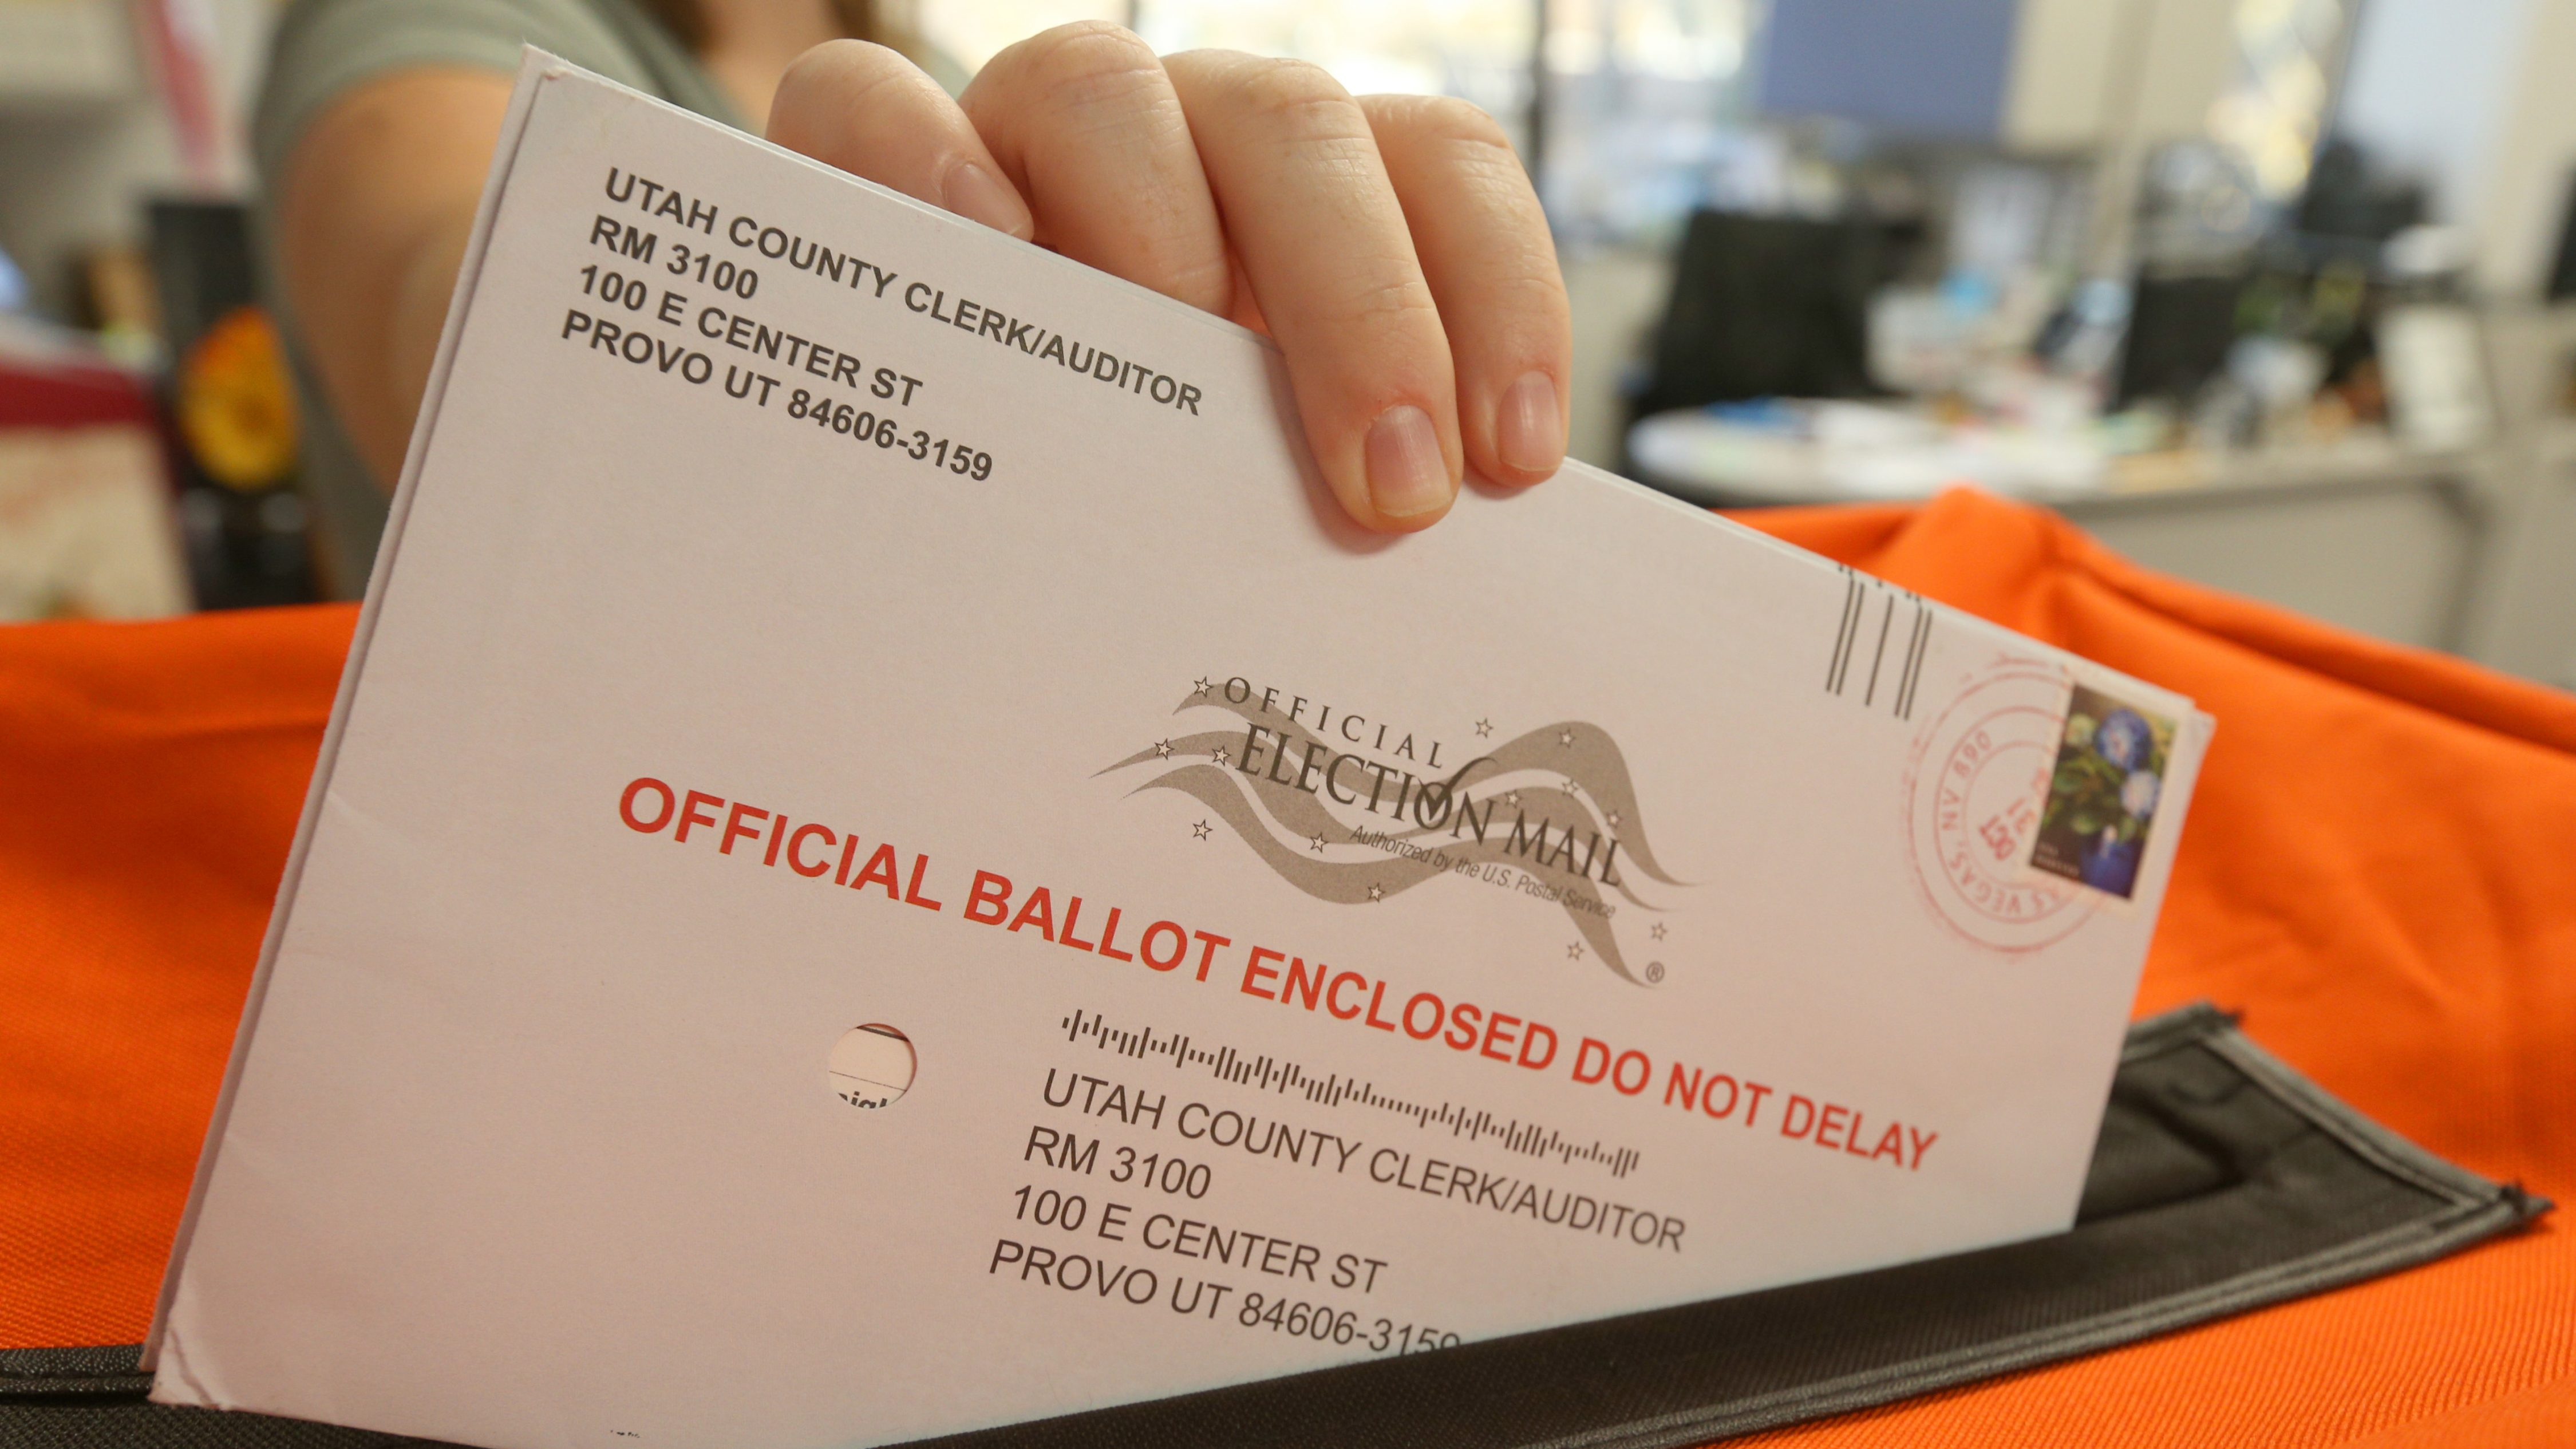 Voting by mail is on the rise, but could alleged N.C. election fraud change that?